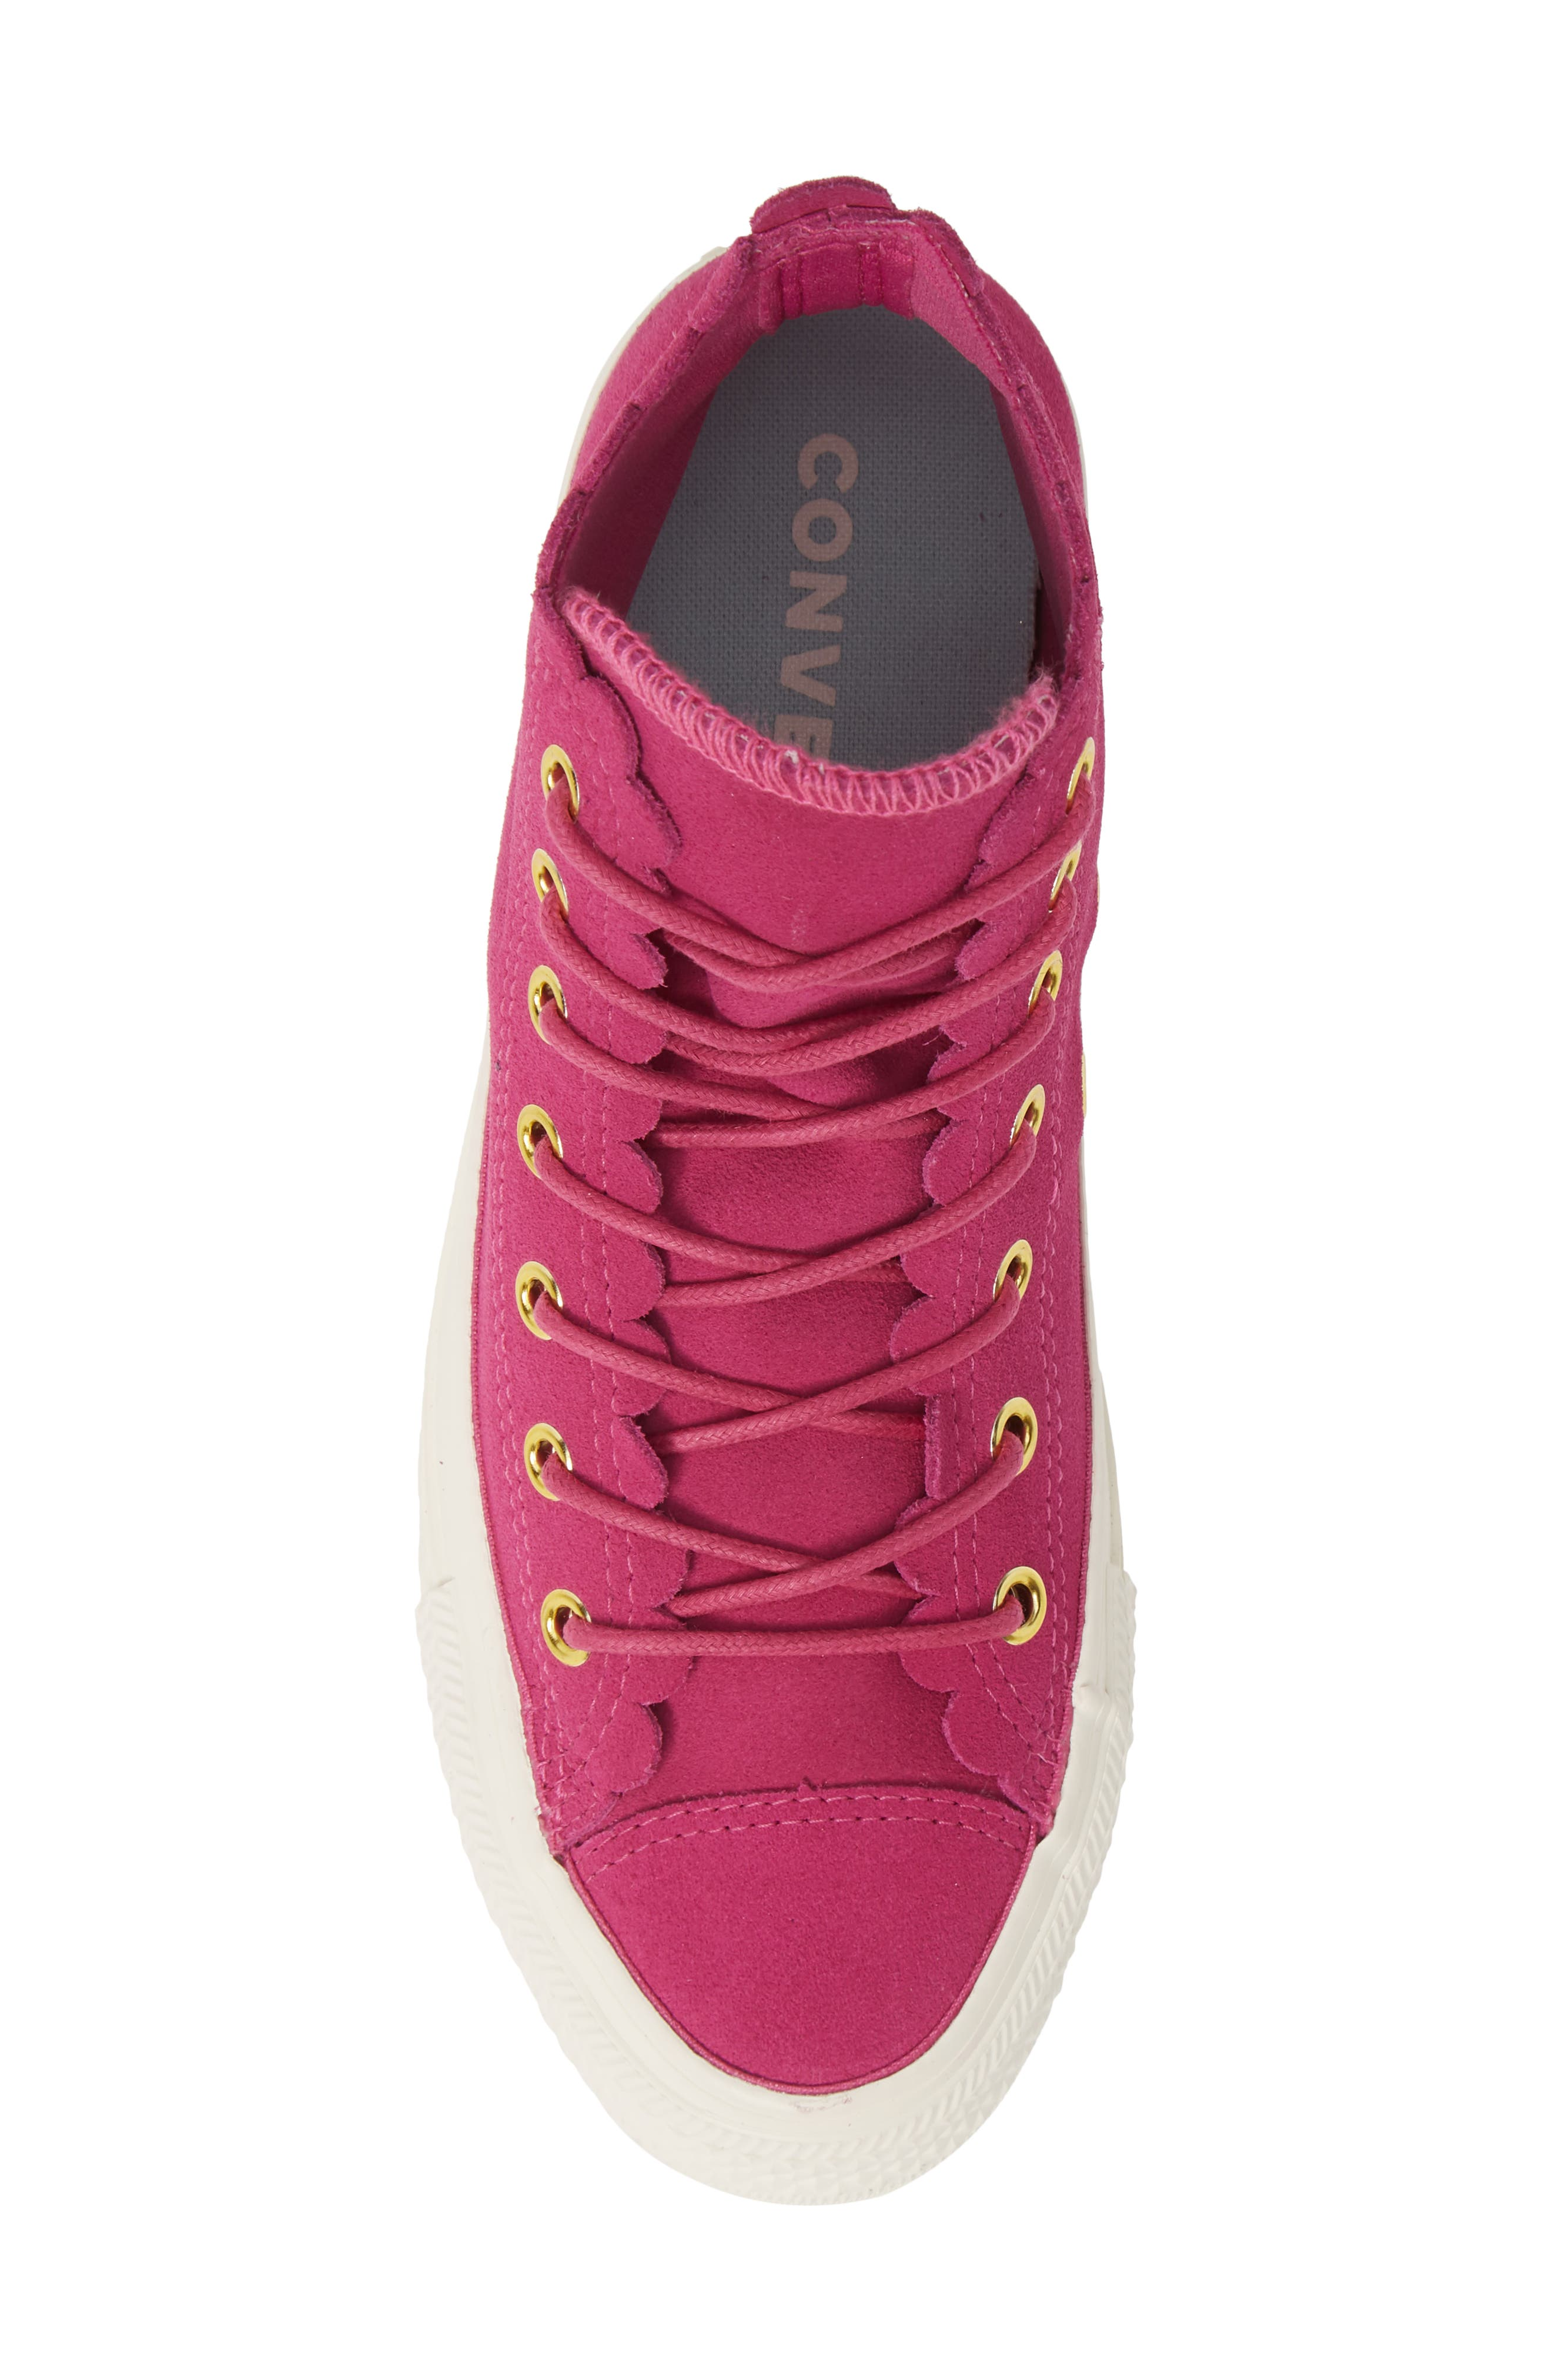 CONVERSE, Chuck Taylor<sup>®</sup> All Star<sup>®</sup> Scallop High Top Suede Sneaker, Alternate thumbnail 5, color, ACTIVE FUCHSIA/ GOLD/ EGRET